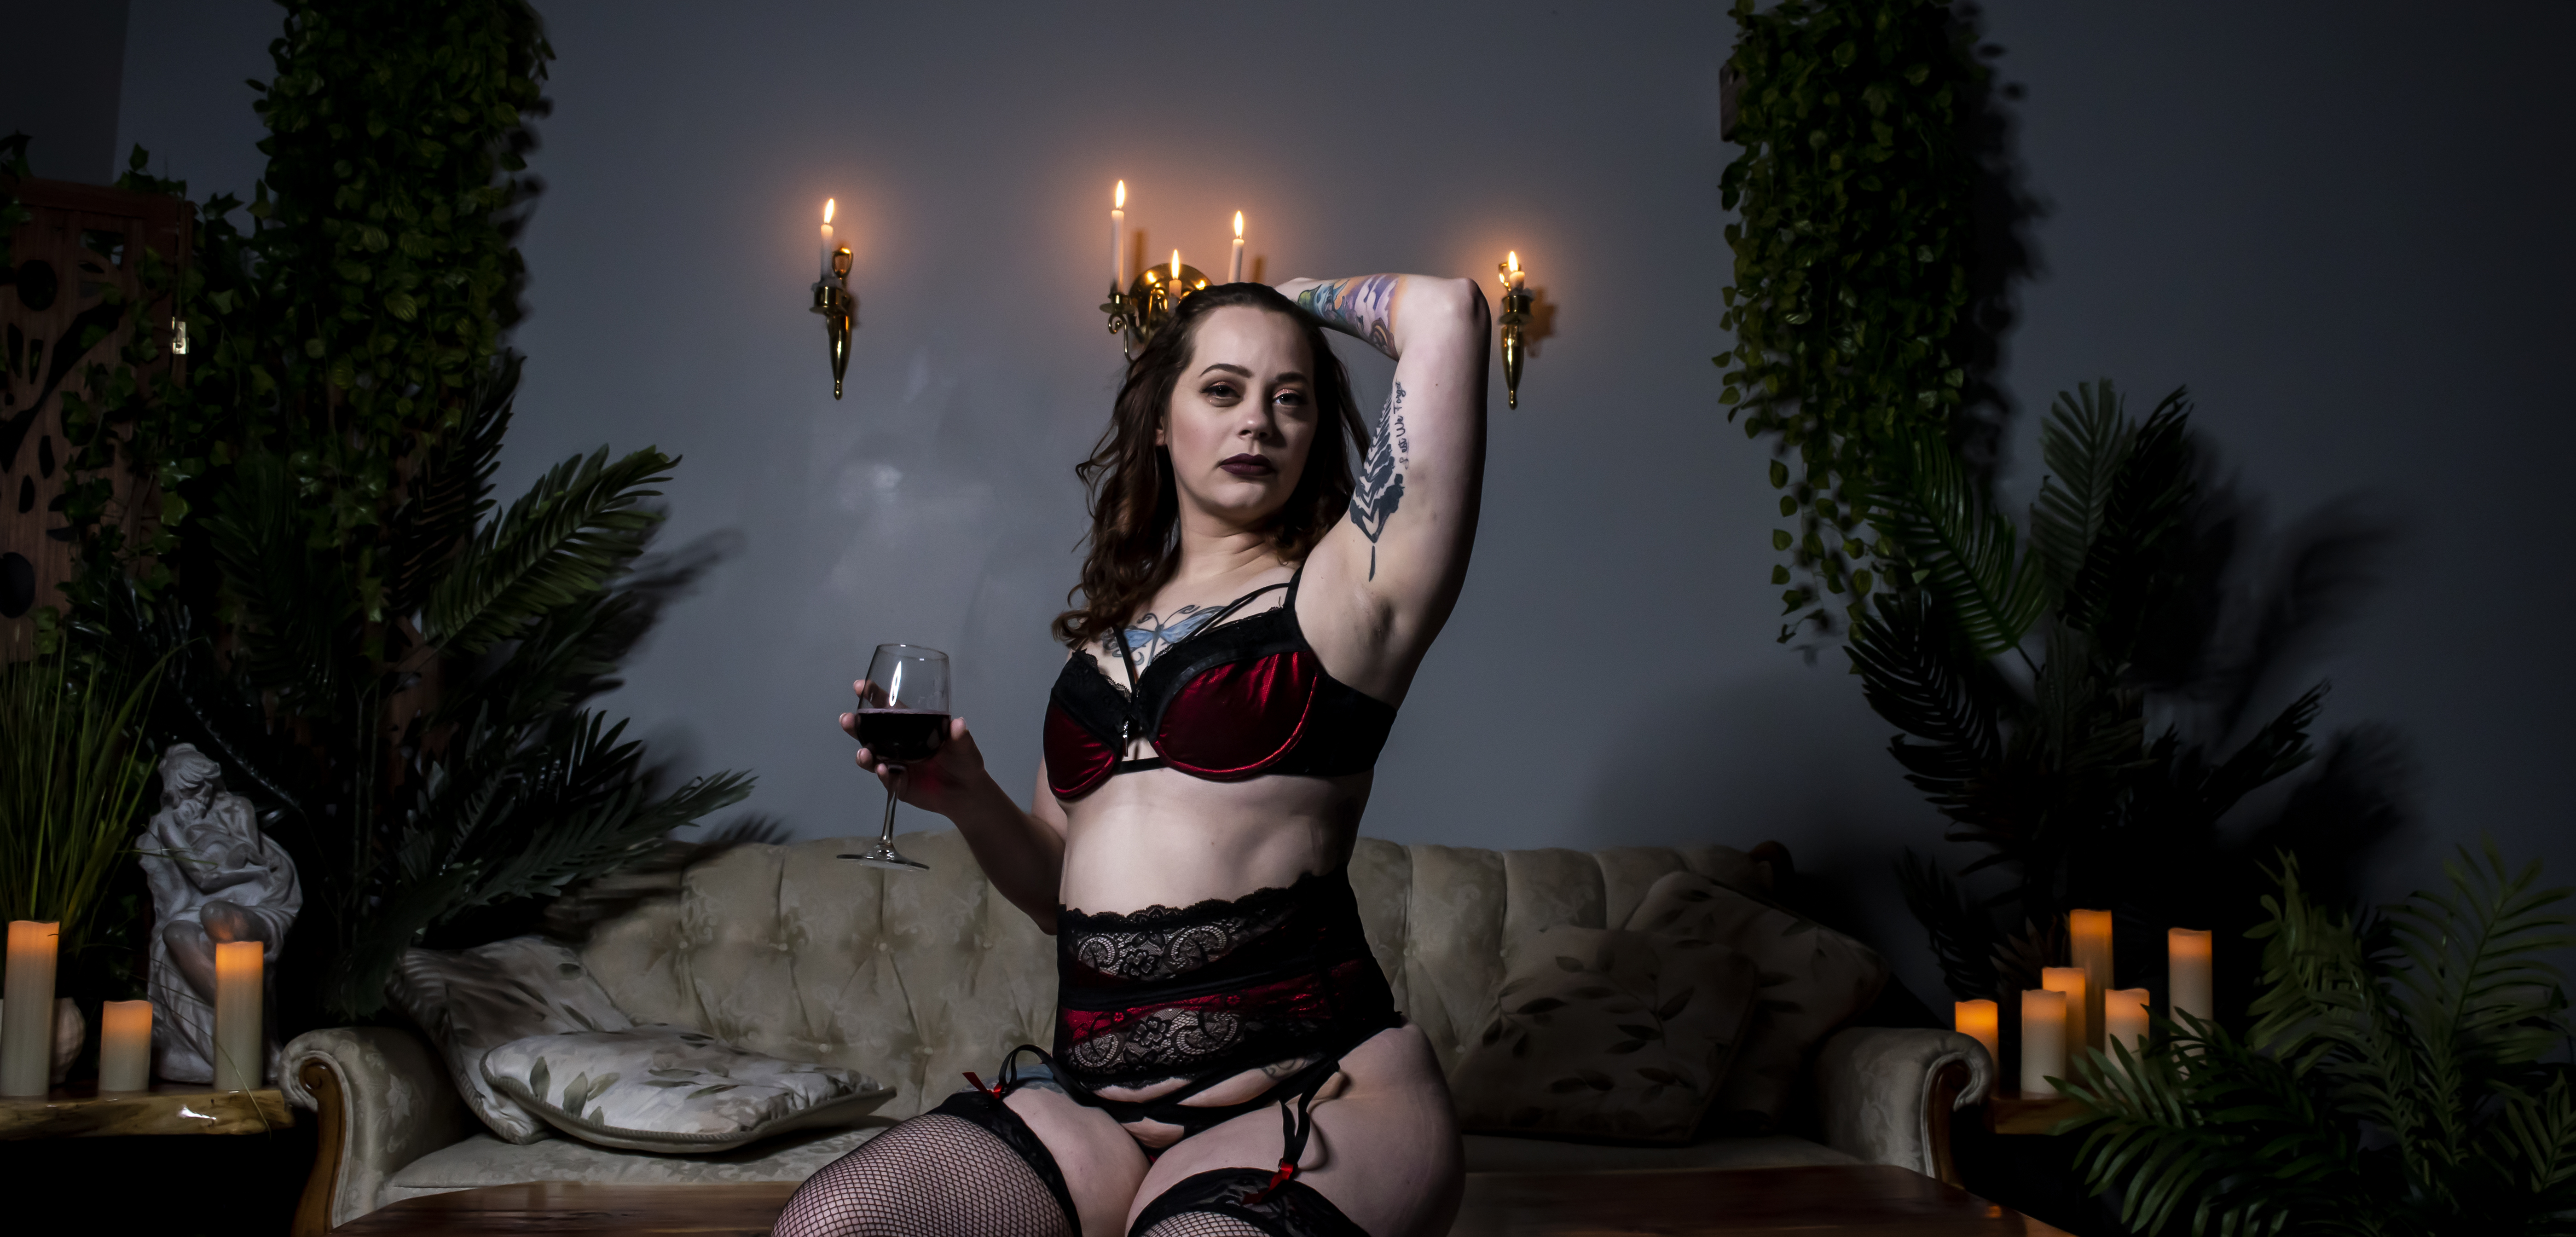 boudoir photographer near me